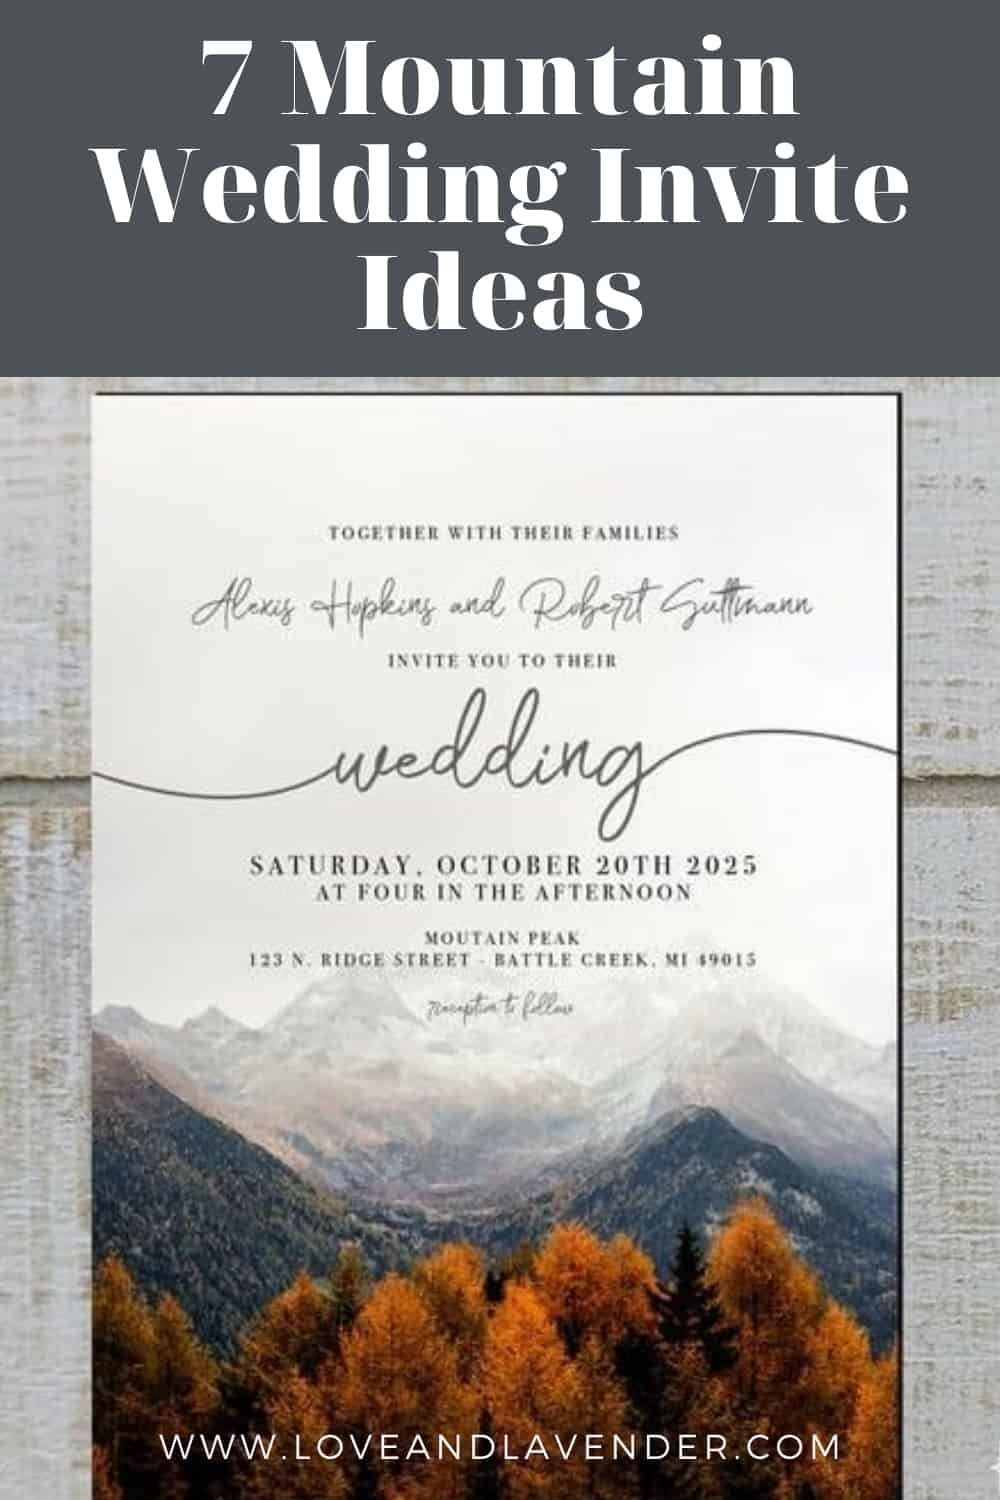 Pinterest Pin - Mountain Wedding invite Ideas